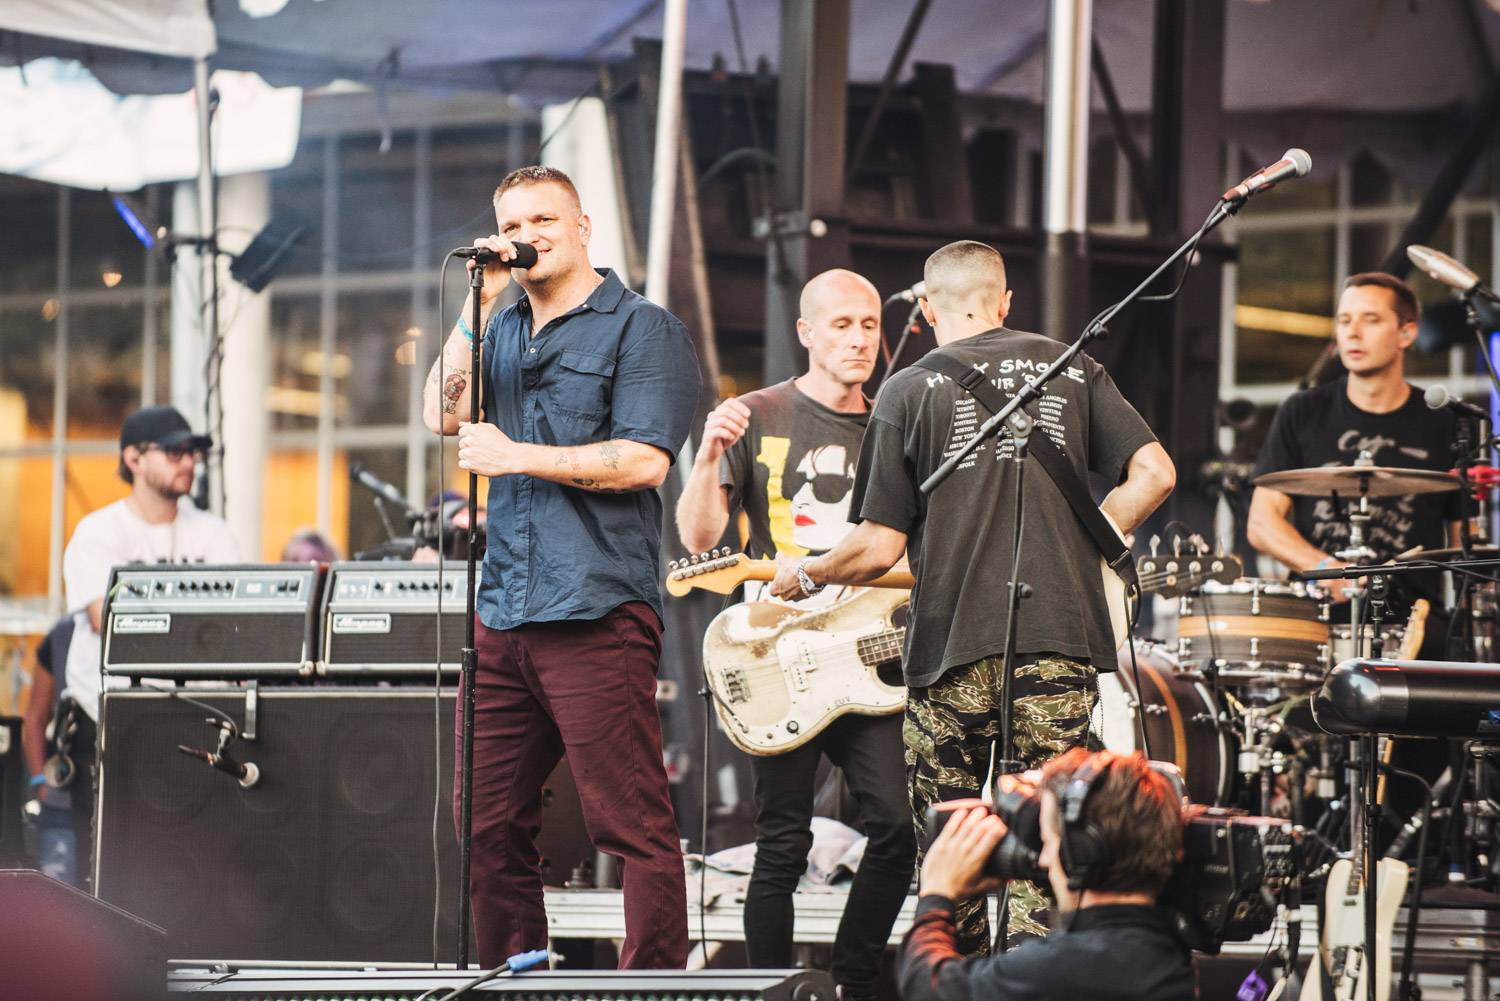 Cold War Kids at the Bumbershoot Music Festival 2018 - Day 3. Sept 2 2018. Pavel Boiko photo.